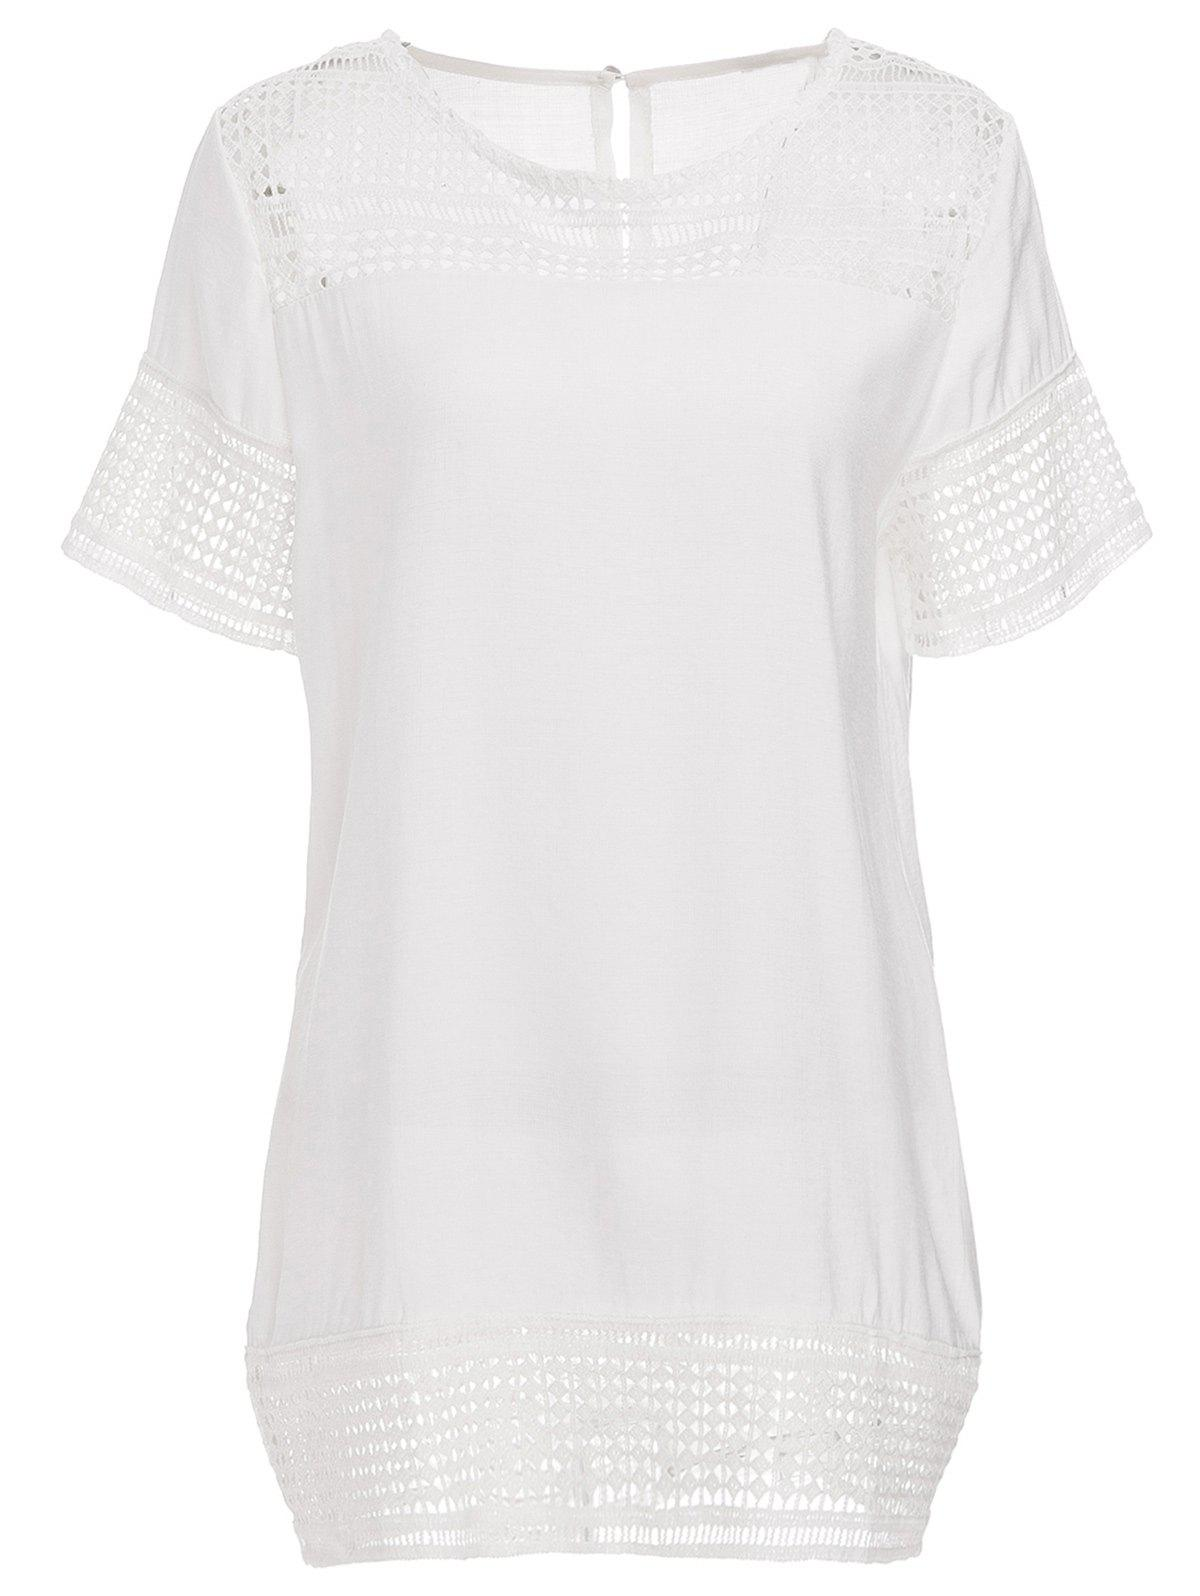 Stylish Women's Short Sleeve Round Neck Hollow Out T-Shirt - WHITE 4XL